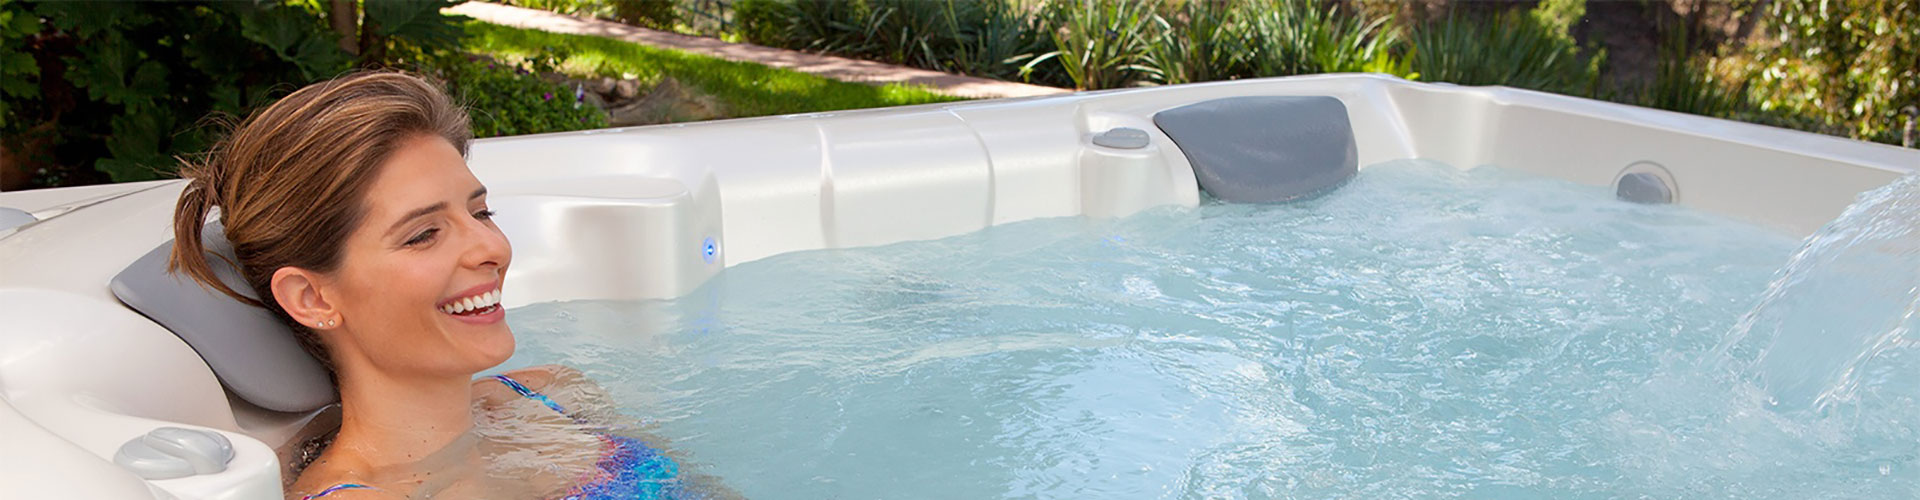 Where to Buy Your Hot Tub